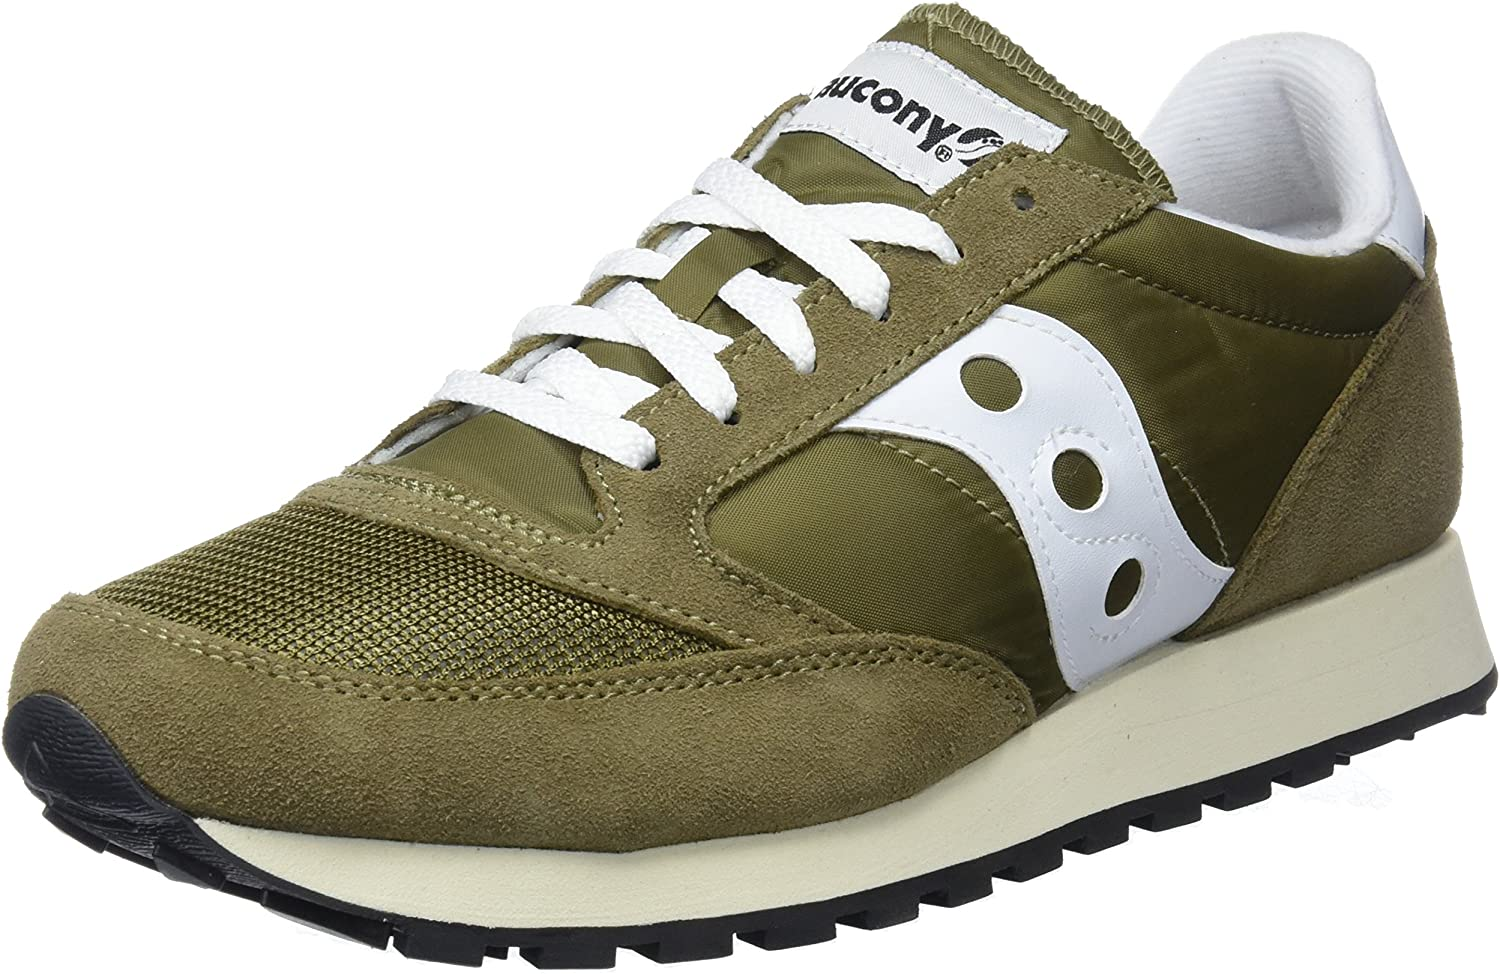 Saucony Men's Jazz Original Vintage Sneakers